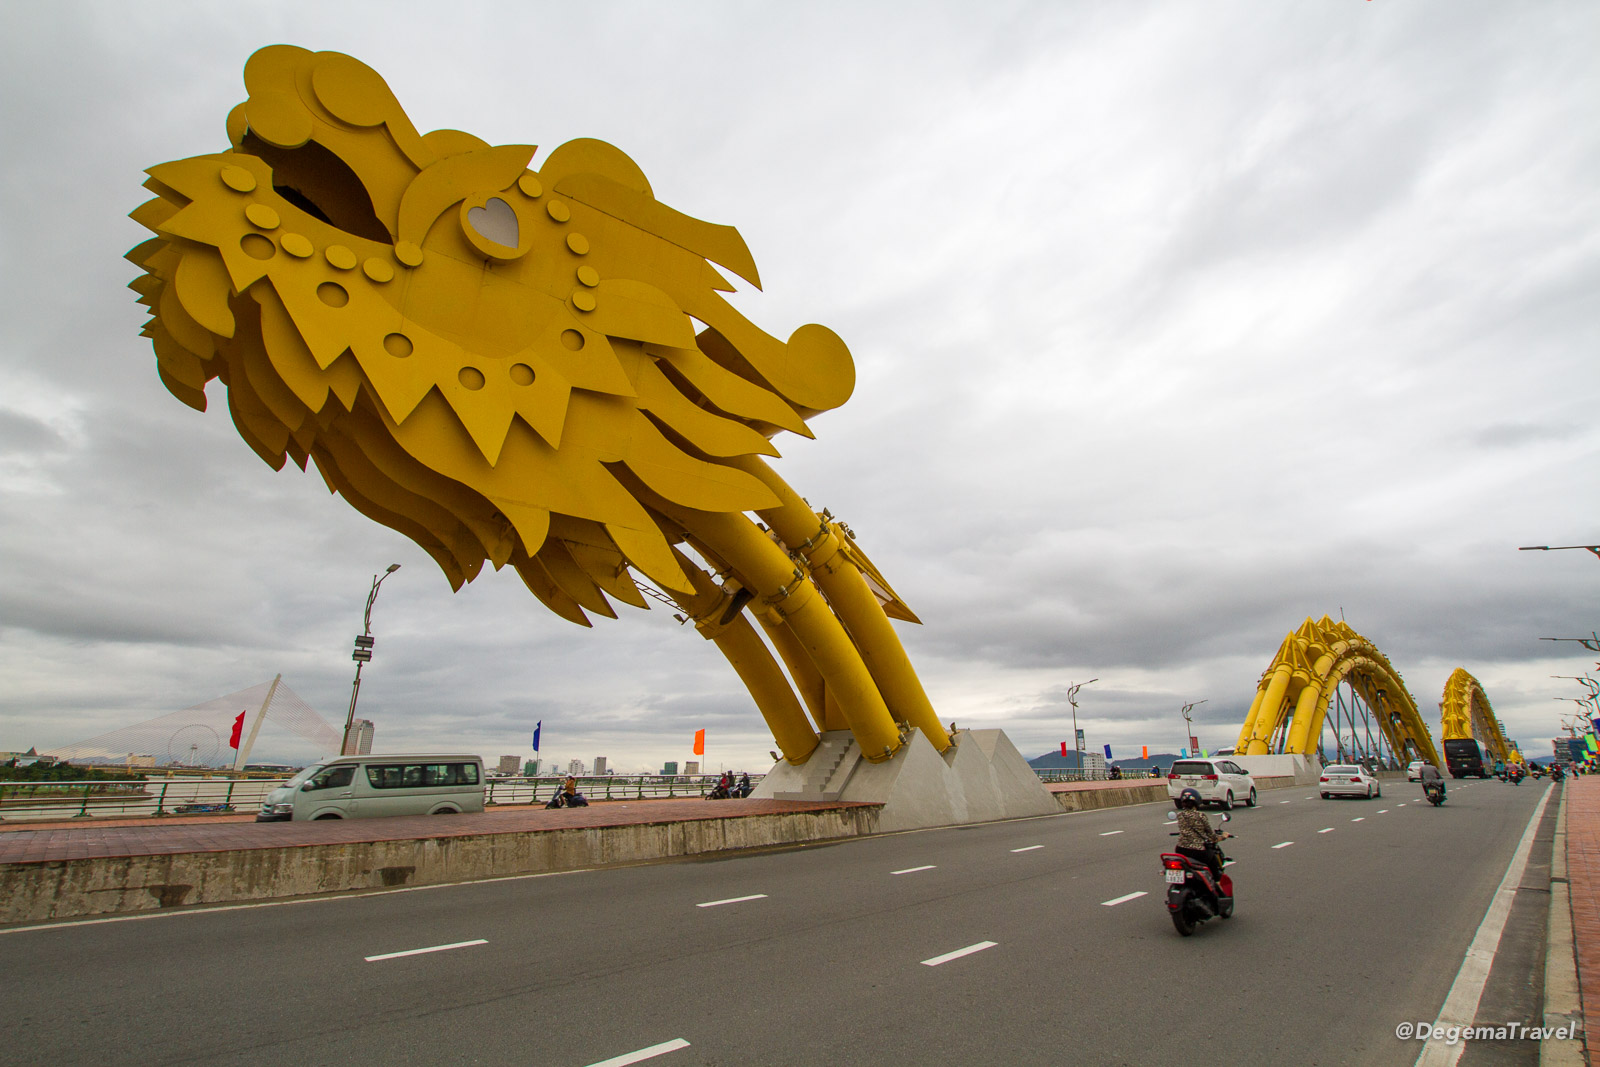 Cầu Rồng (Dragon Bridge) in Da Nang, Vietnam